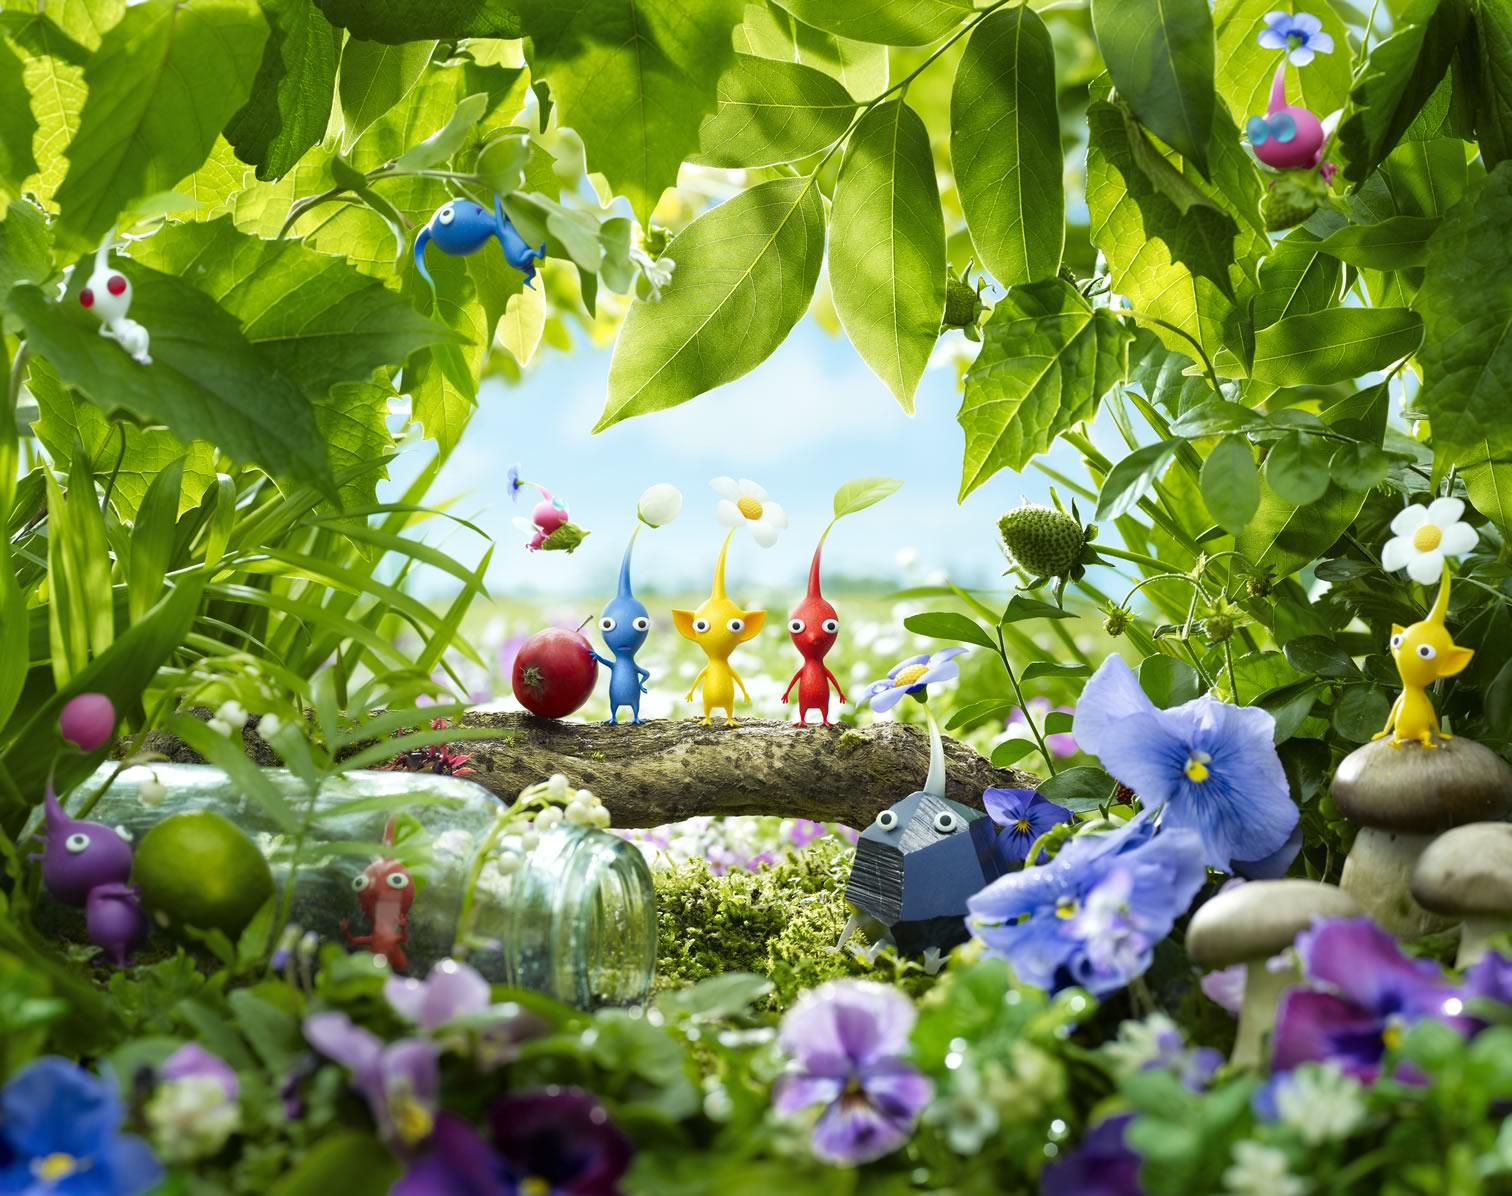 String of Major Monthly Releases for Wii U Kicks off with Pikmin 3